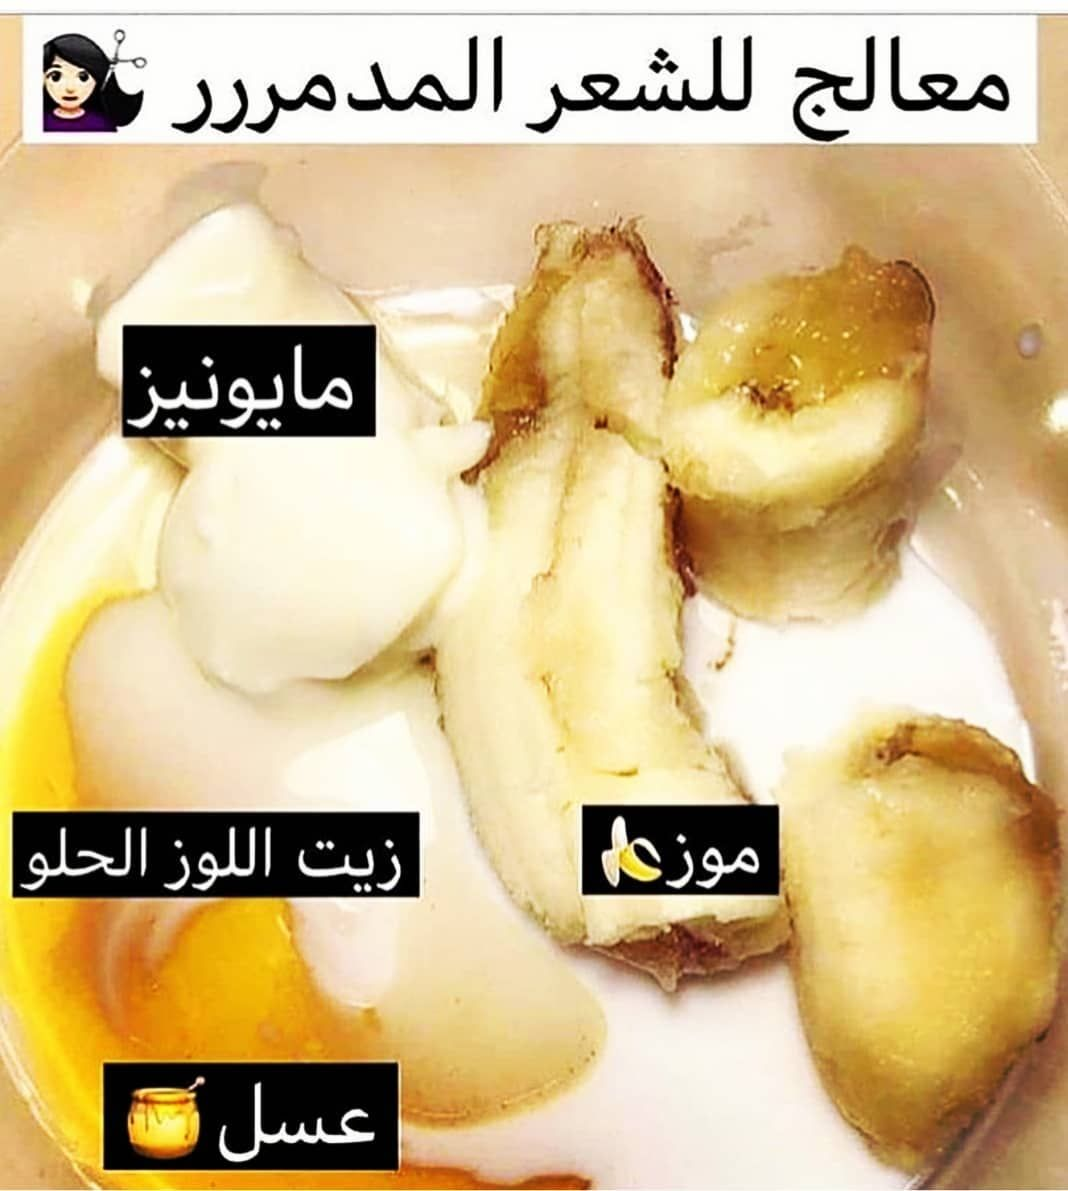 Pin By Mila On مم In 2020 Hair Care Recipes Healty Hair Health Facts Food